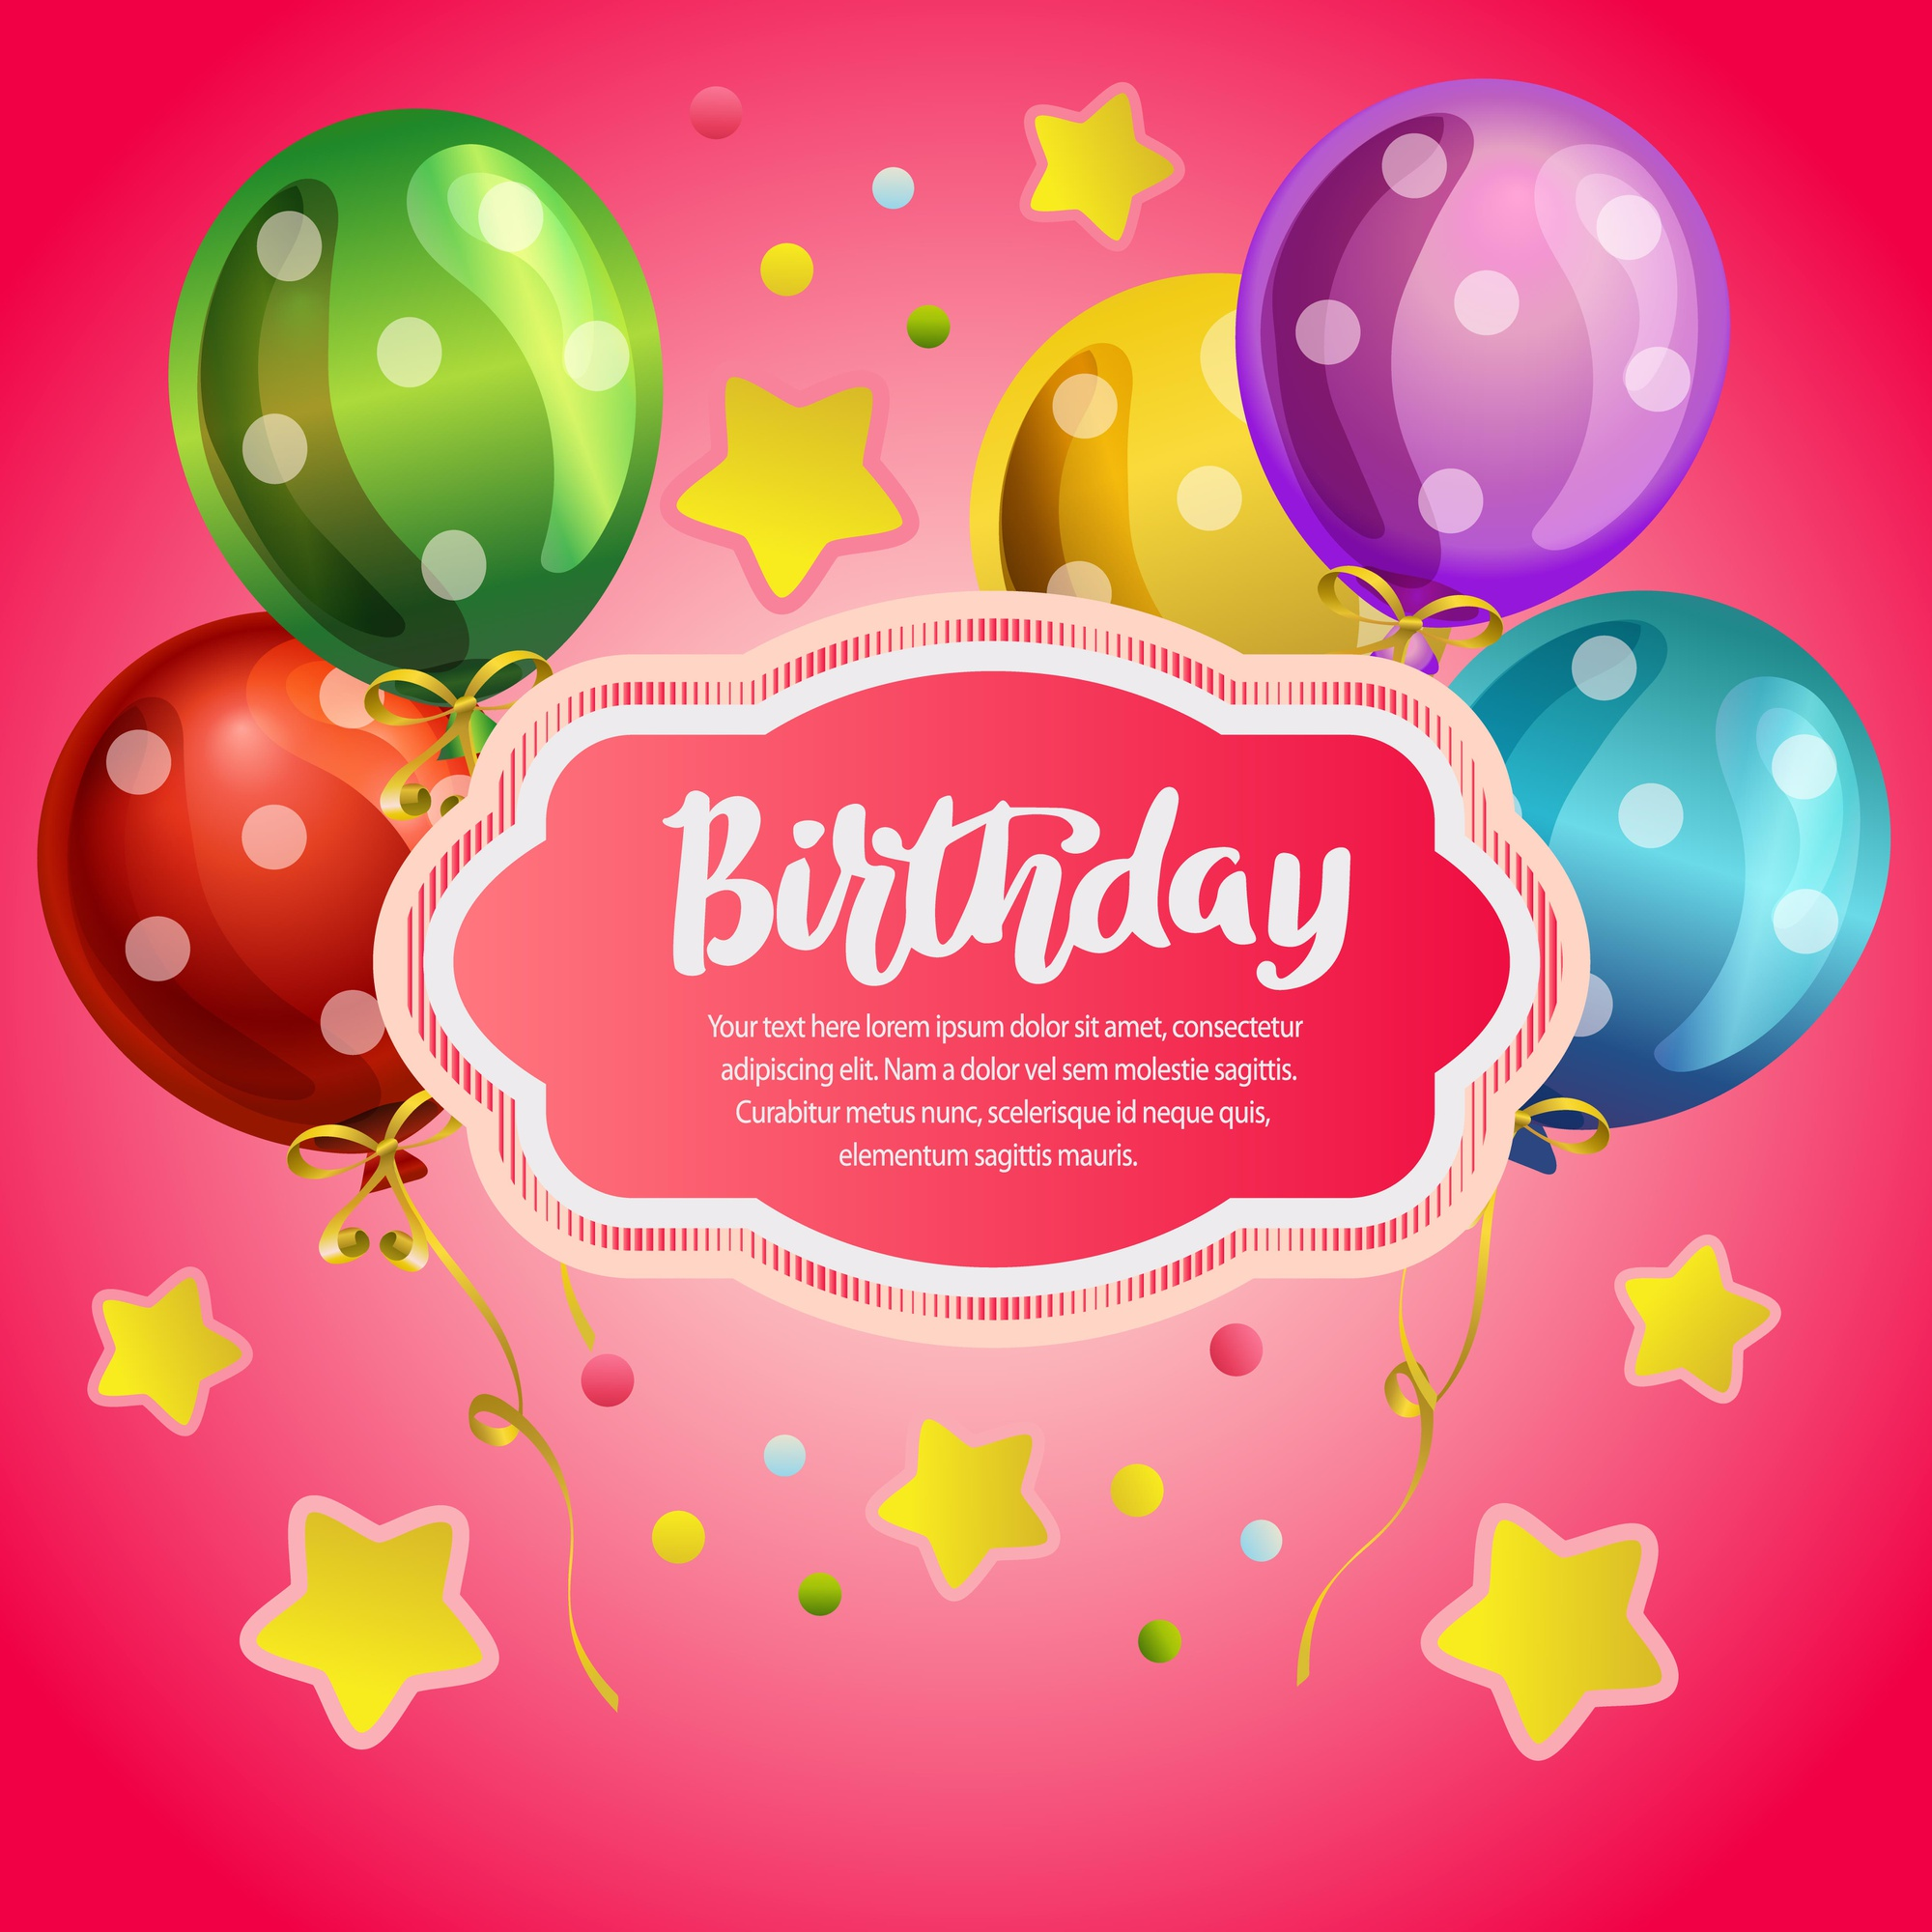 Birthday card with neon pink background